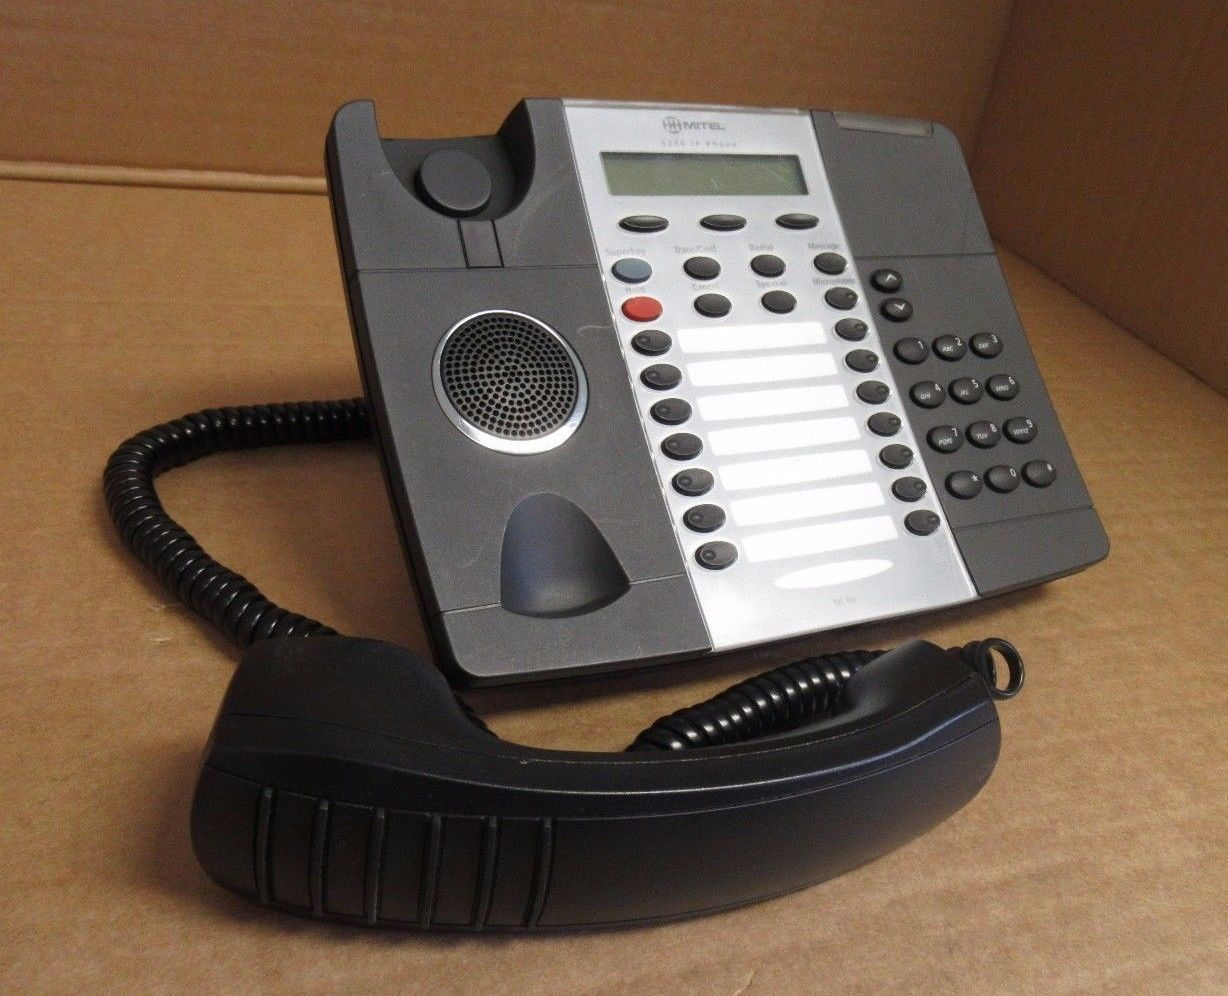 Mitel 5220 IP VoIP 24 Multi key Dual Mode Enterprise Phone with Stand